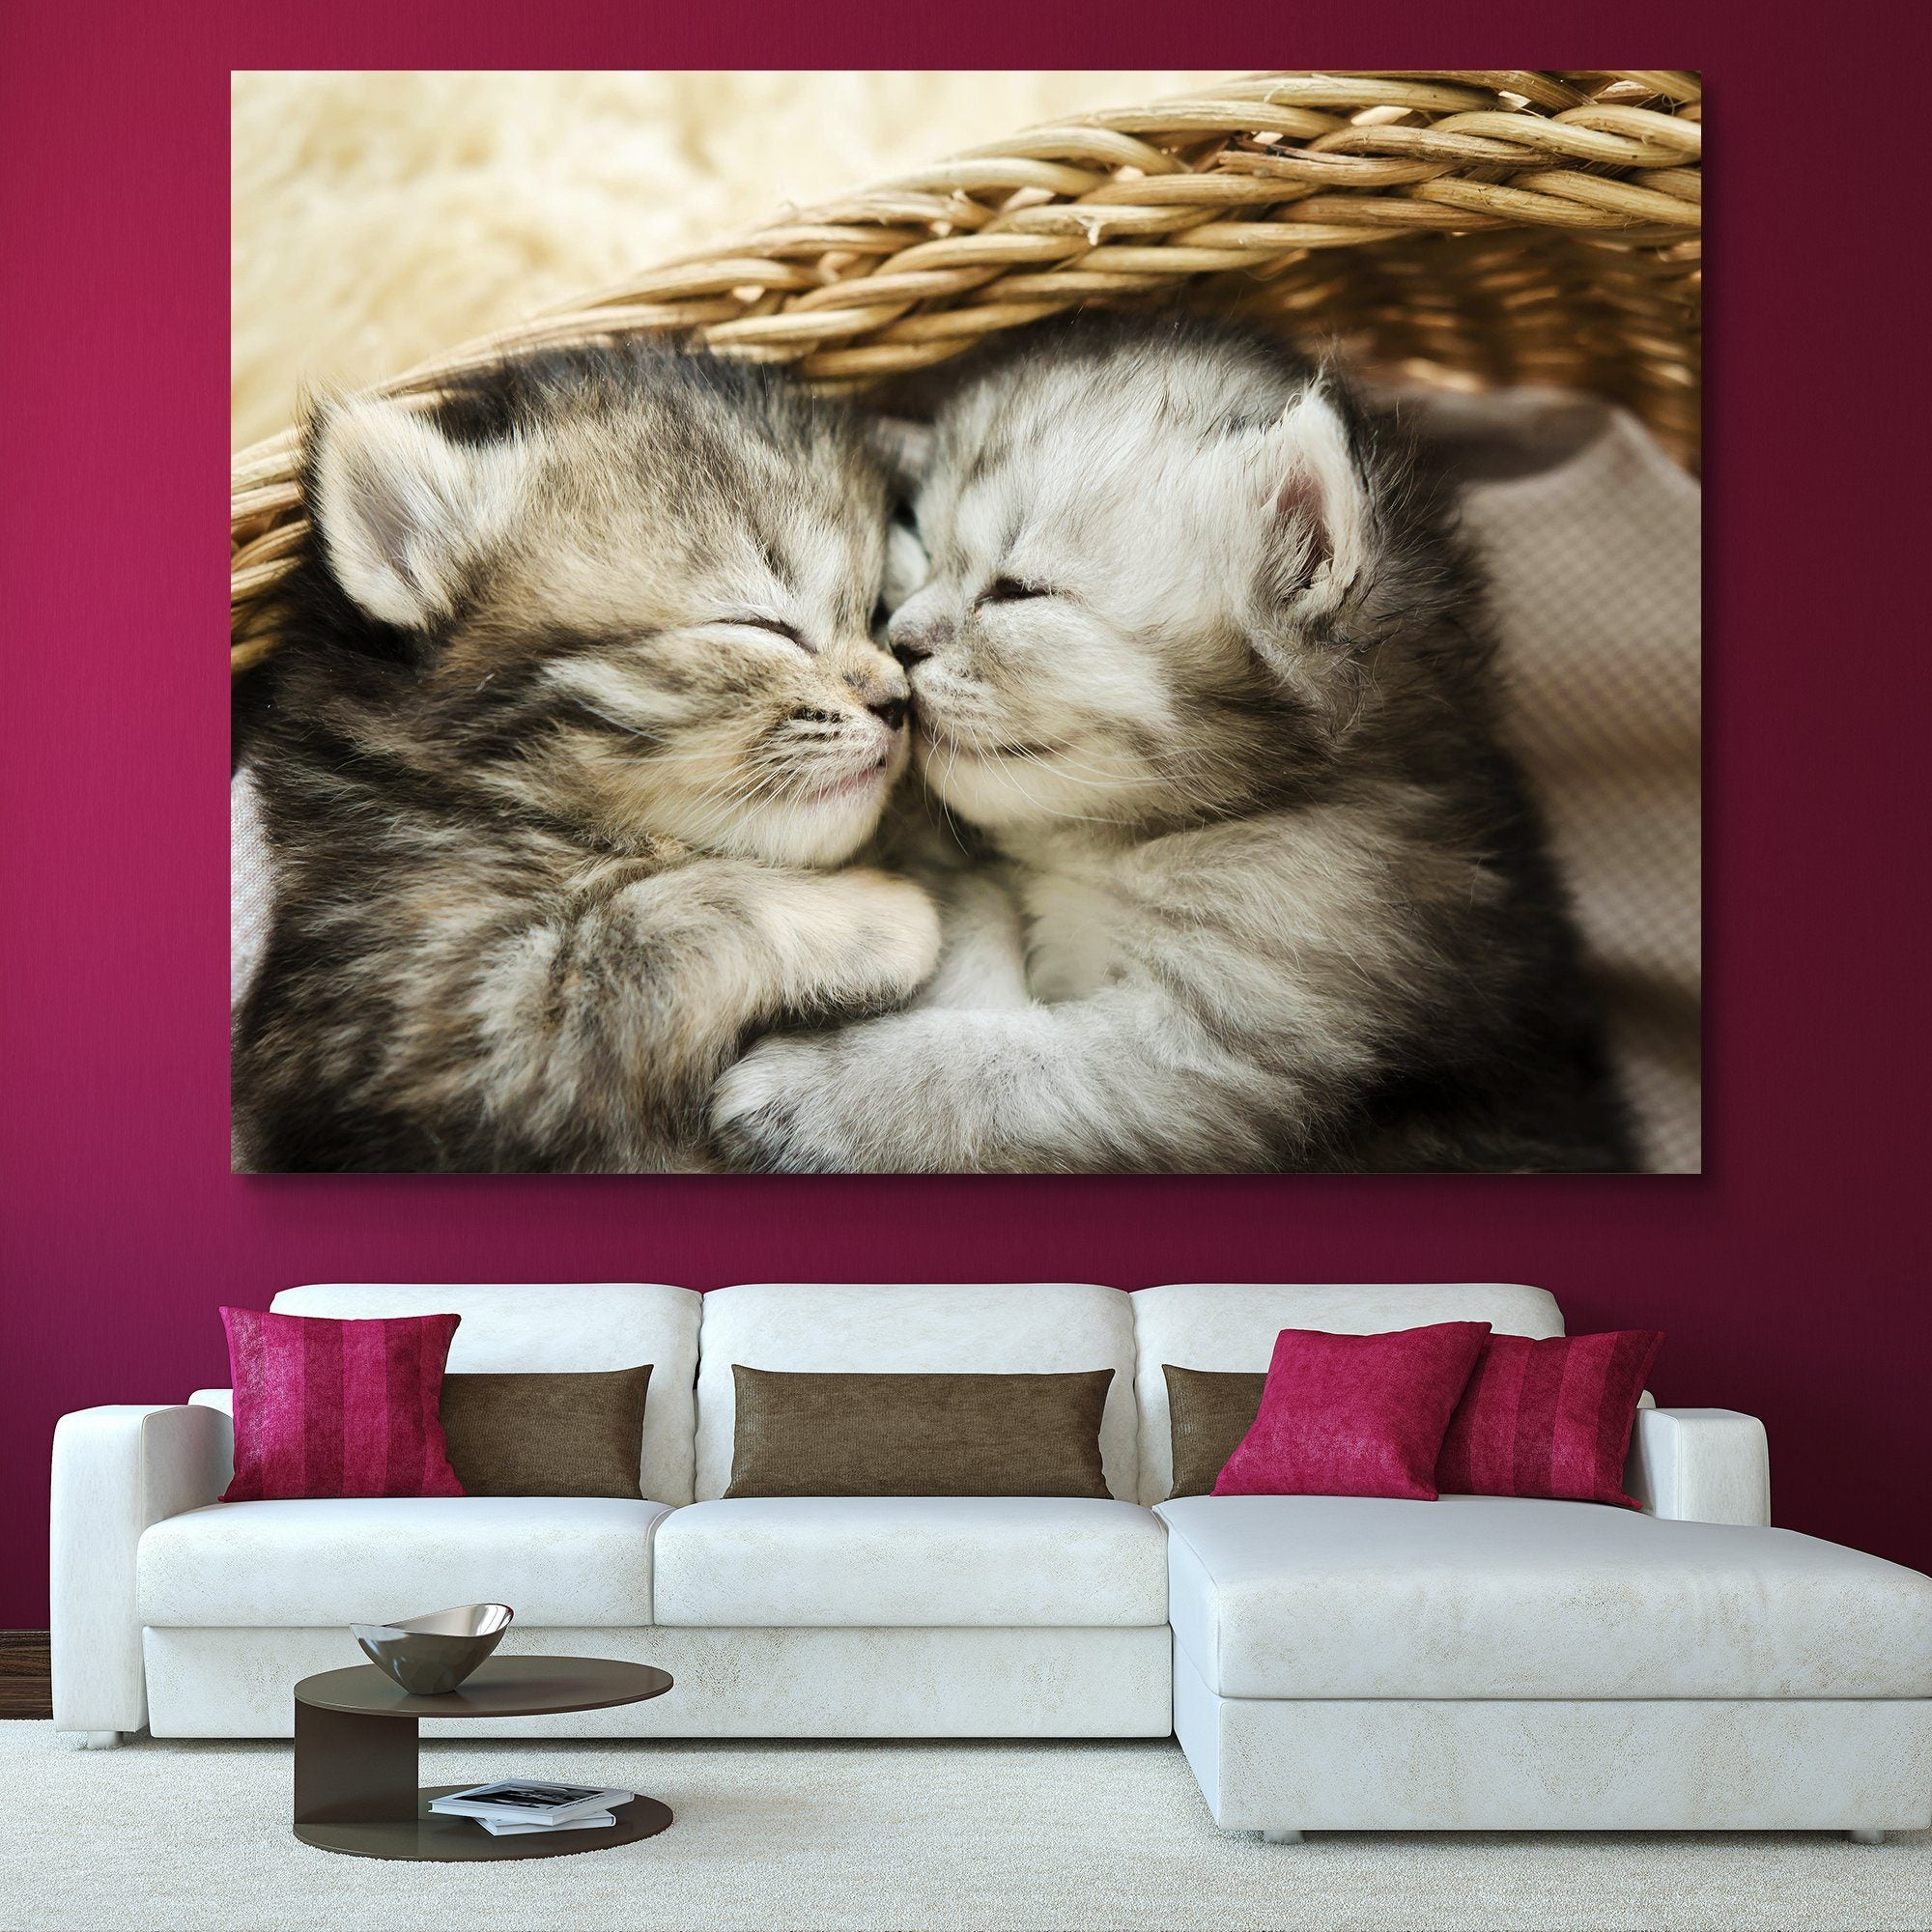 Kitten Hugs wall art